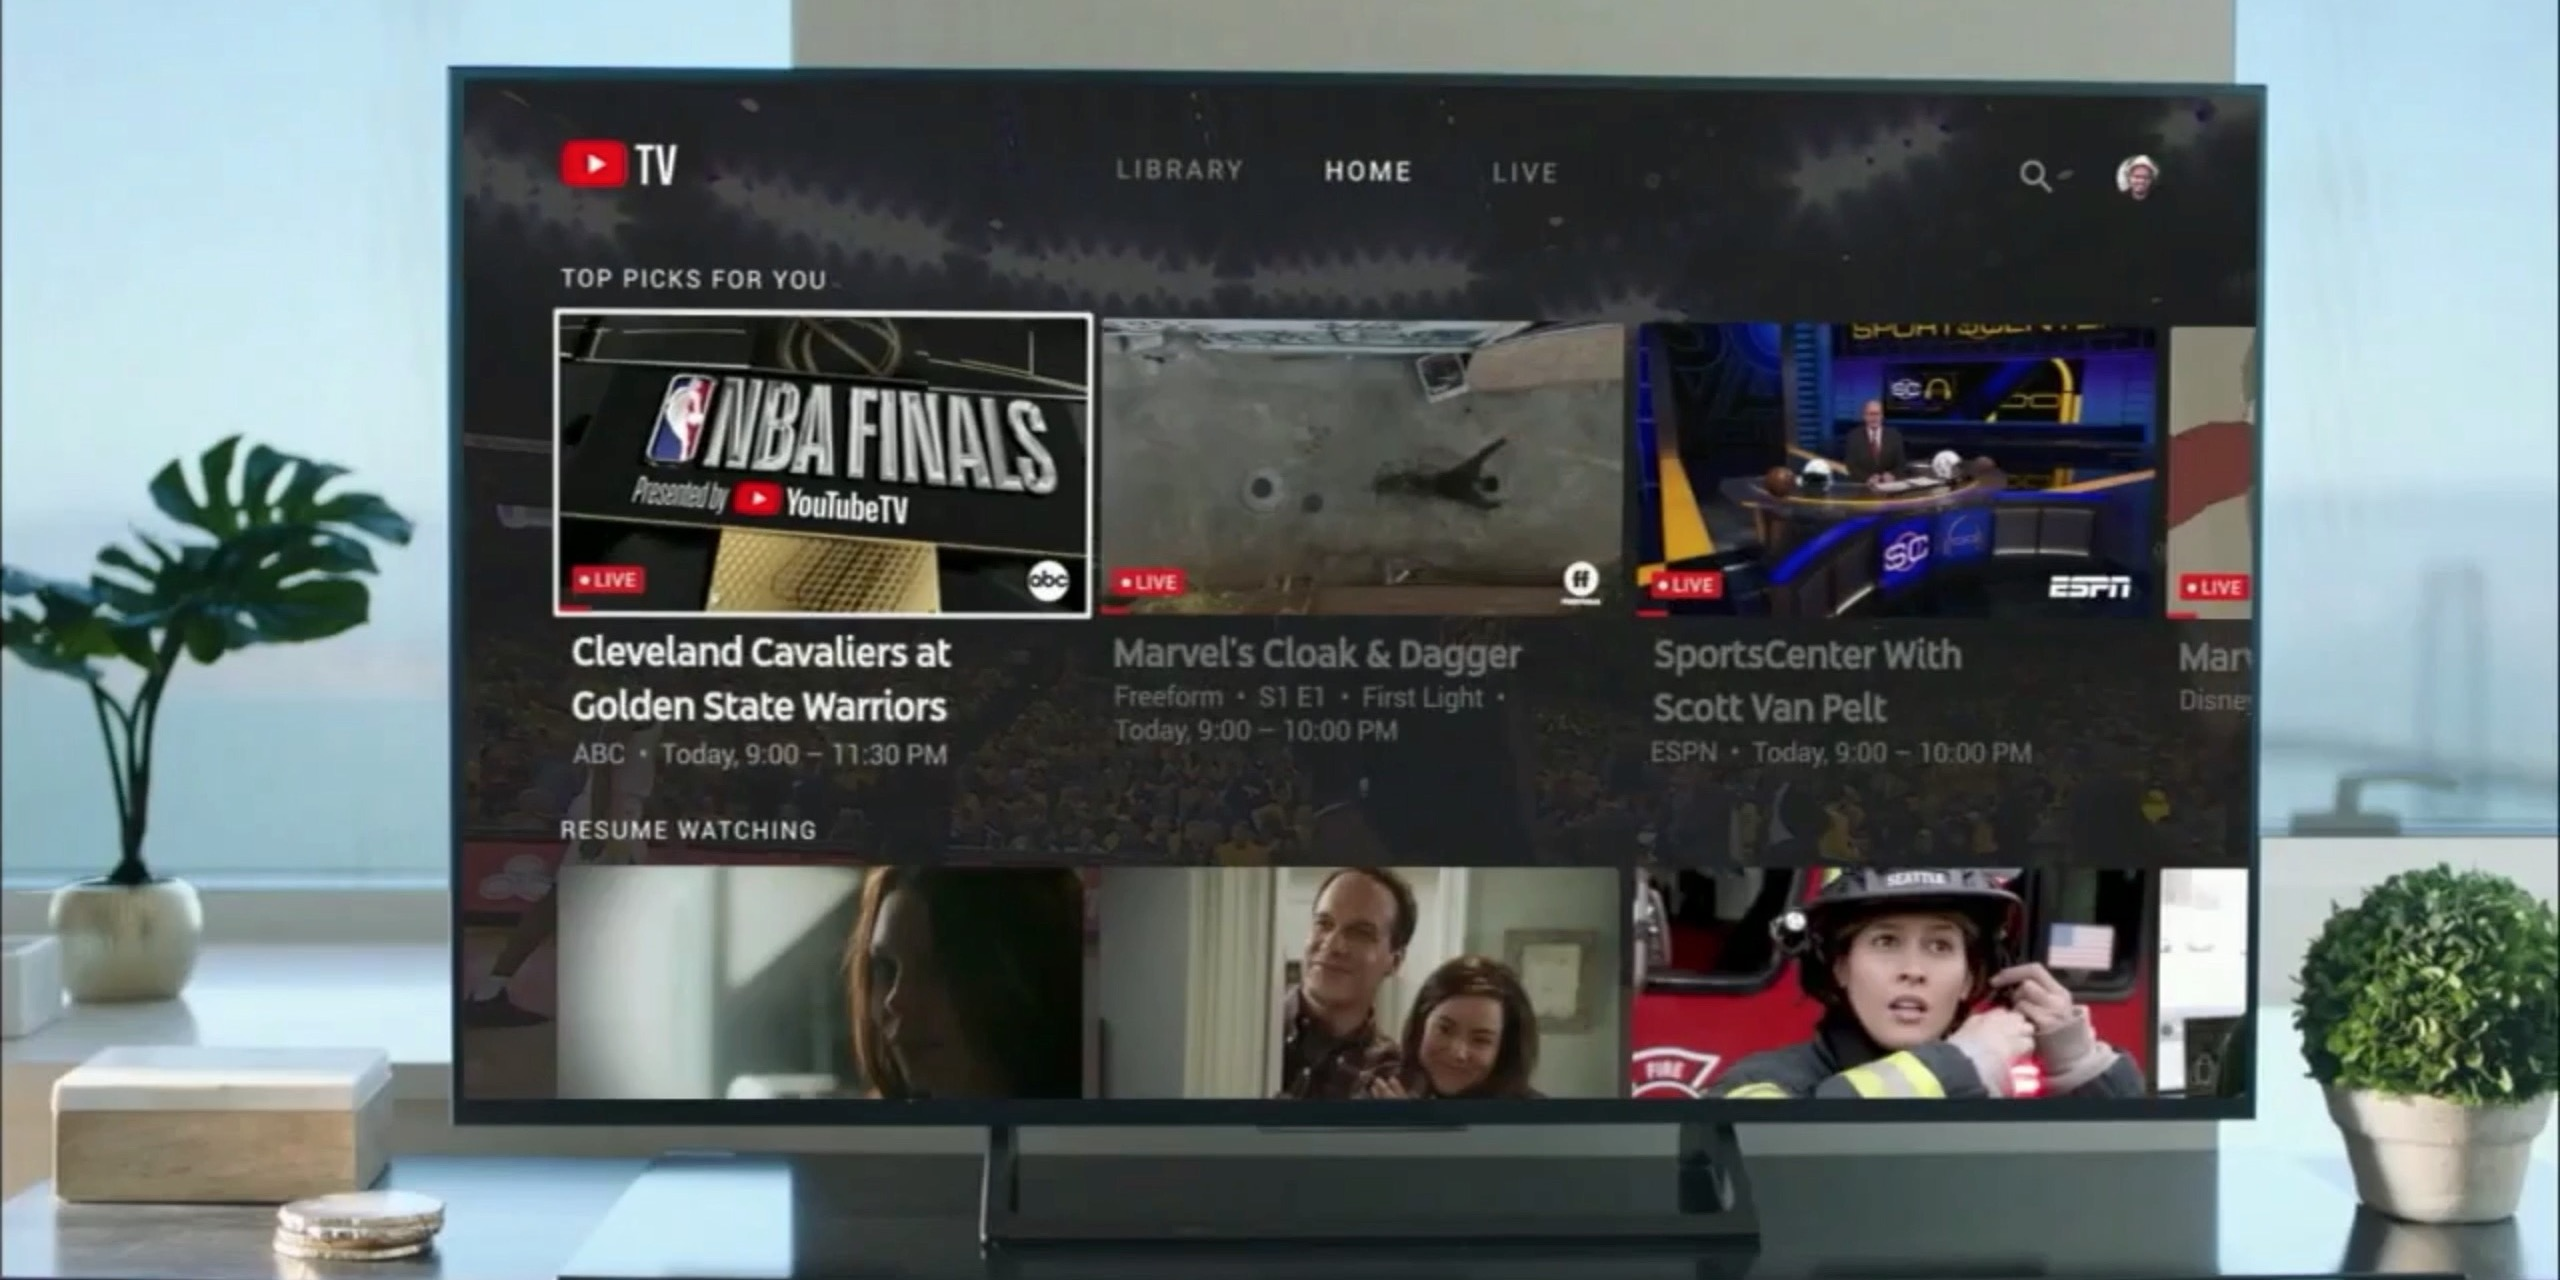 Youtube Tv Advertising During Nba Finals Transitions From Ad To